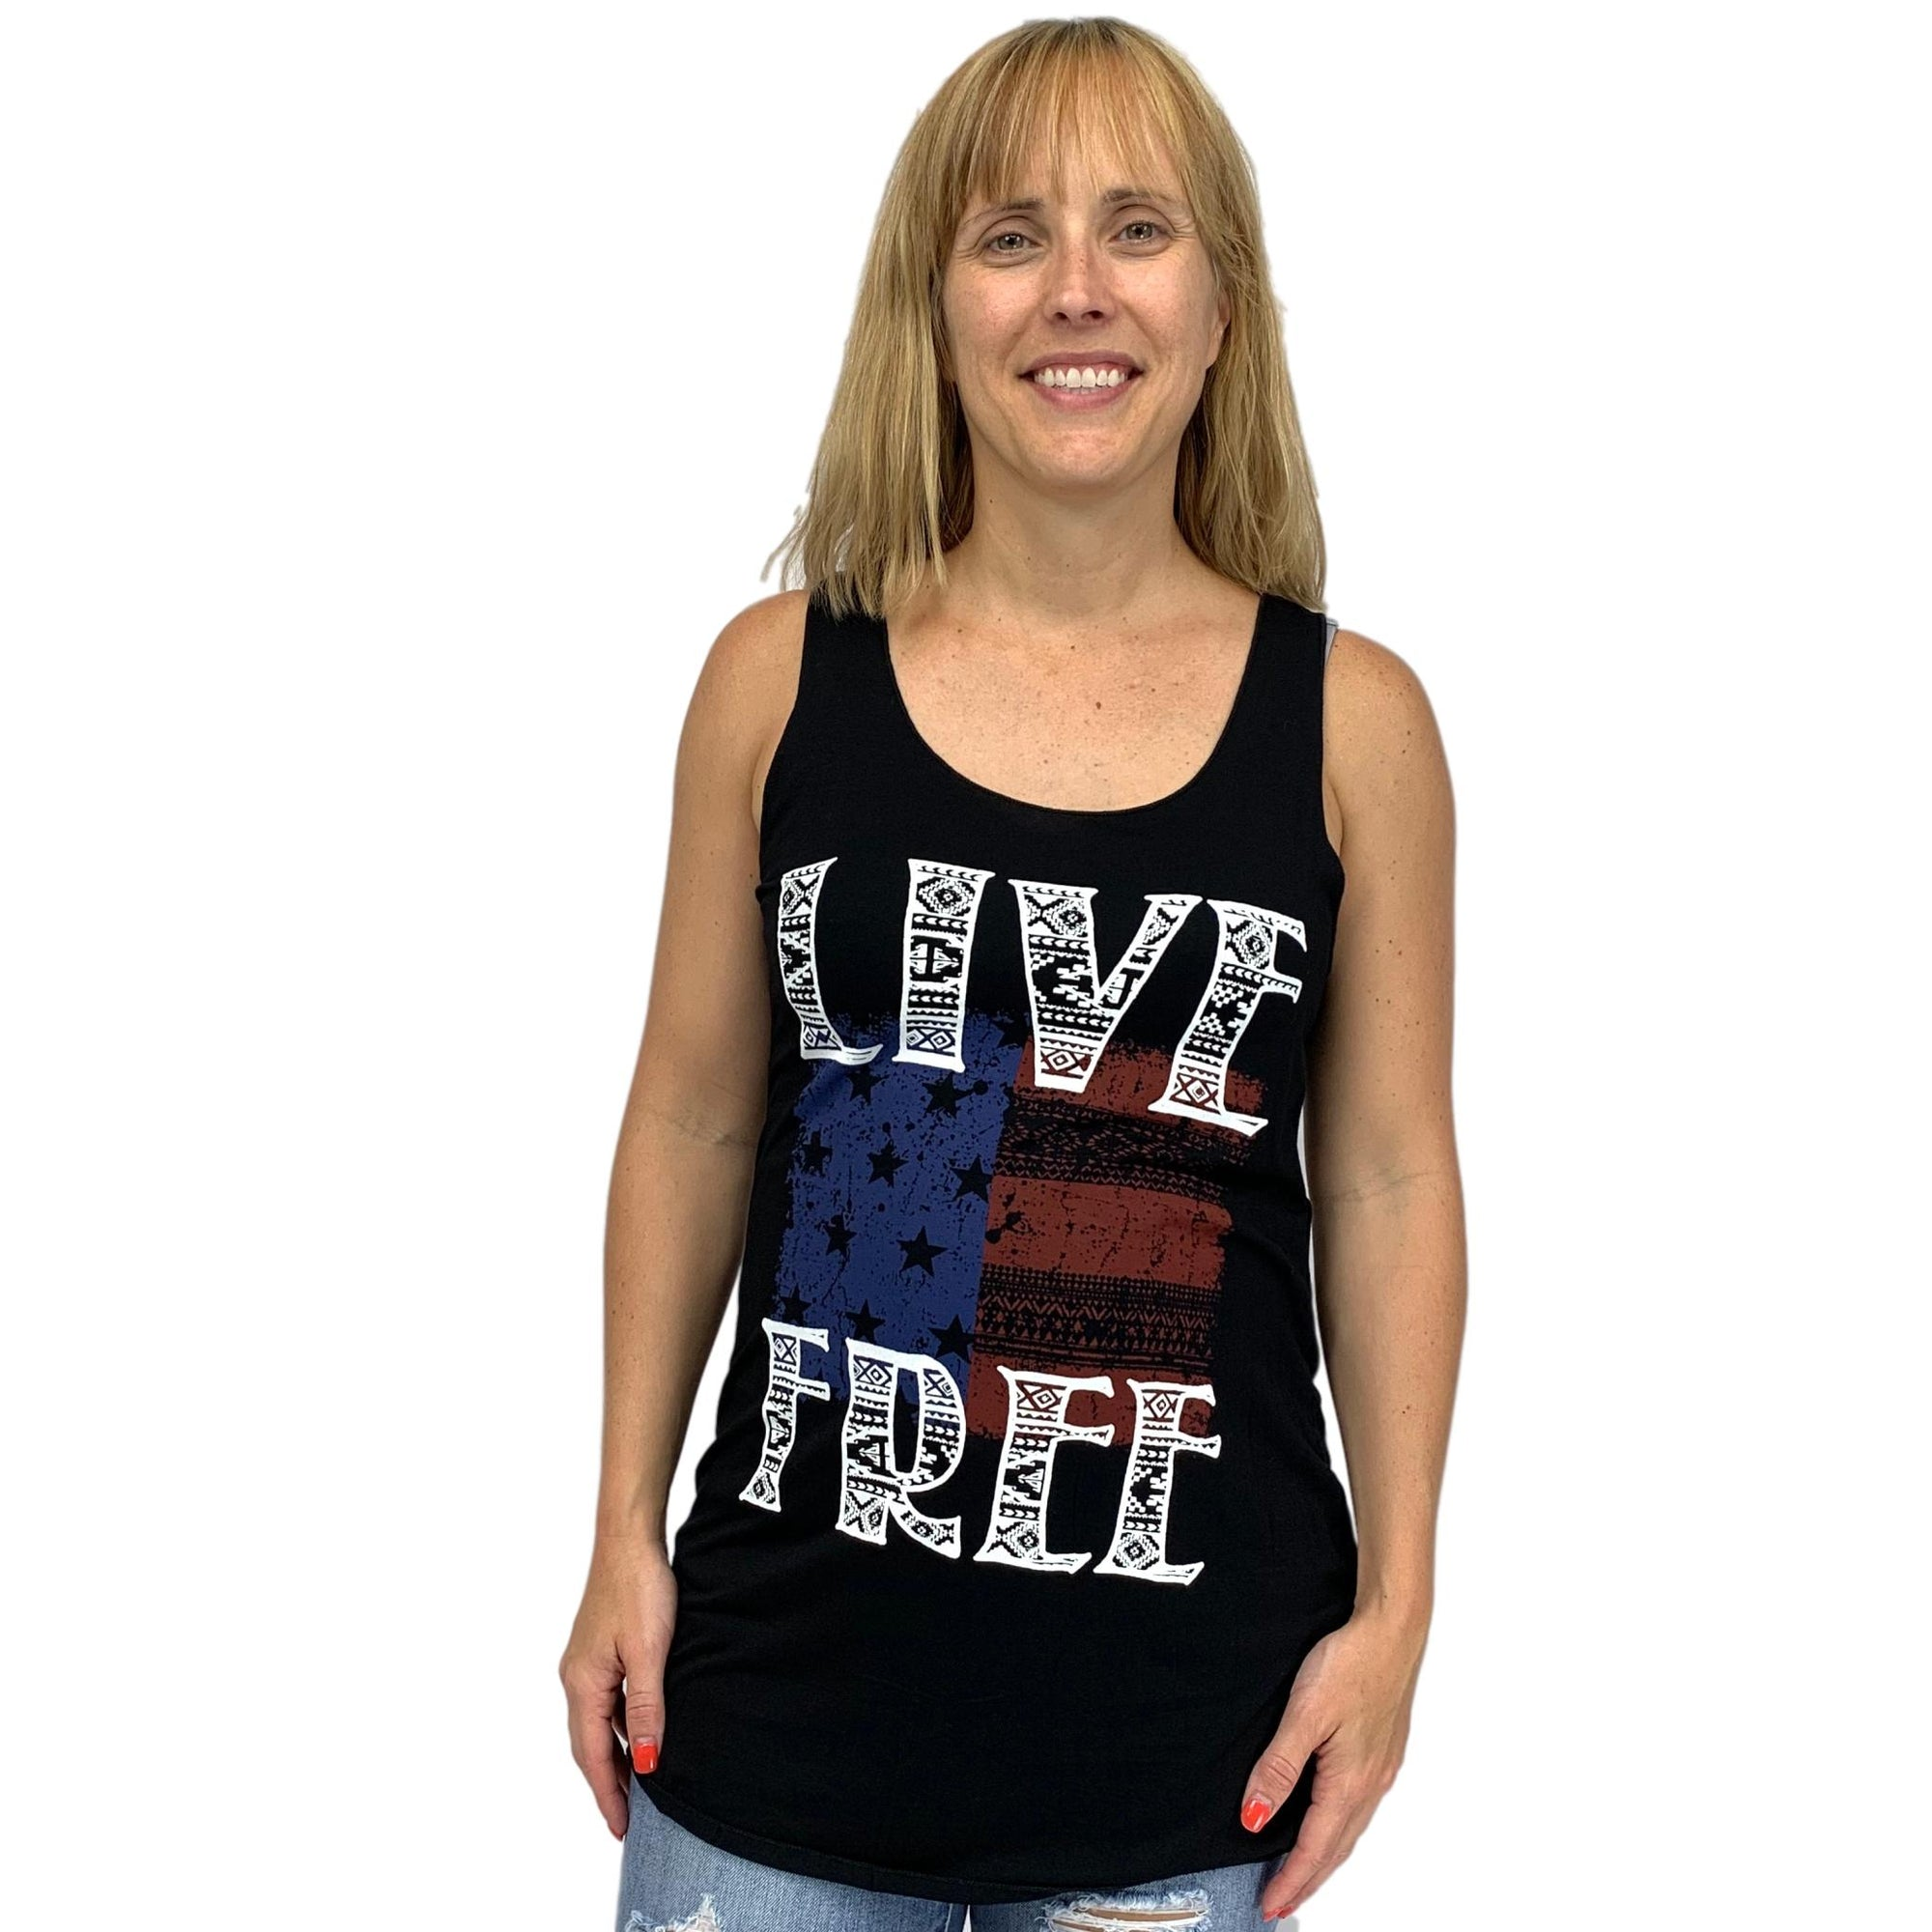 Live Free Racerback Graphic Tank